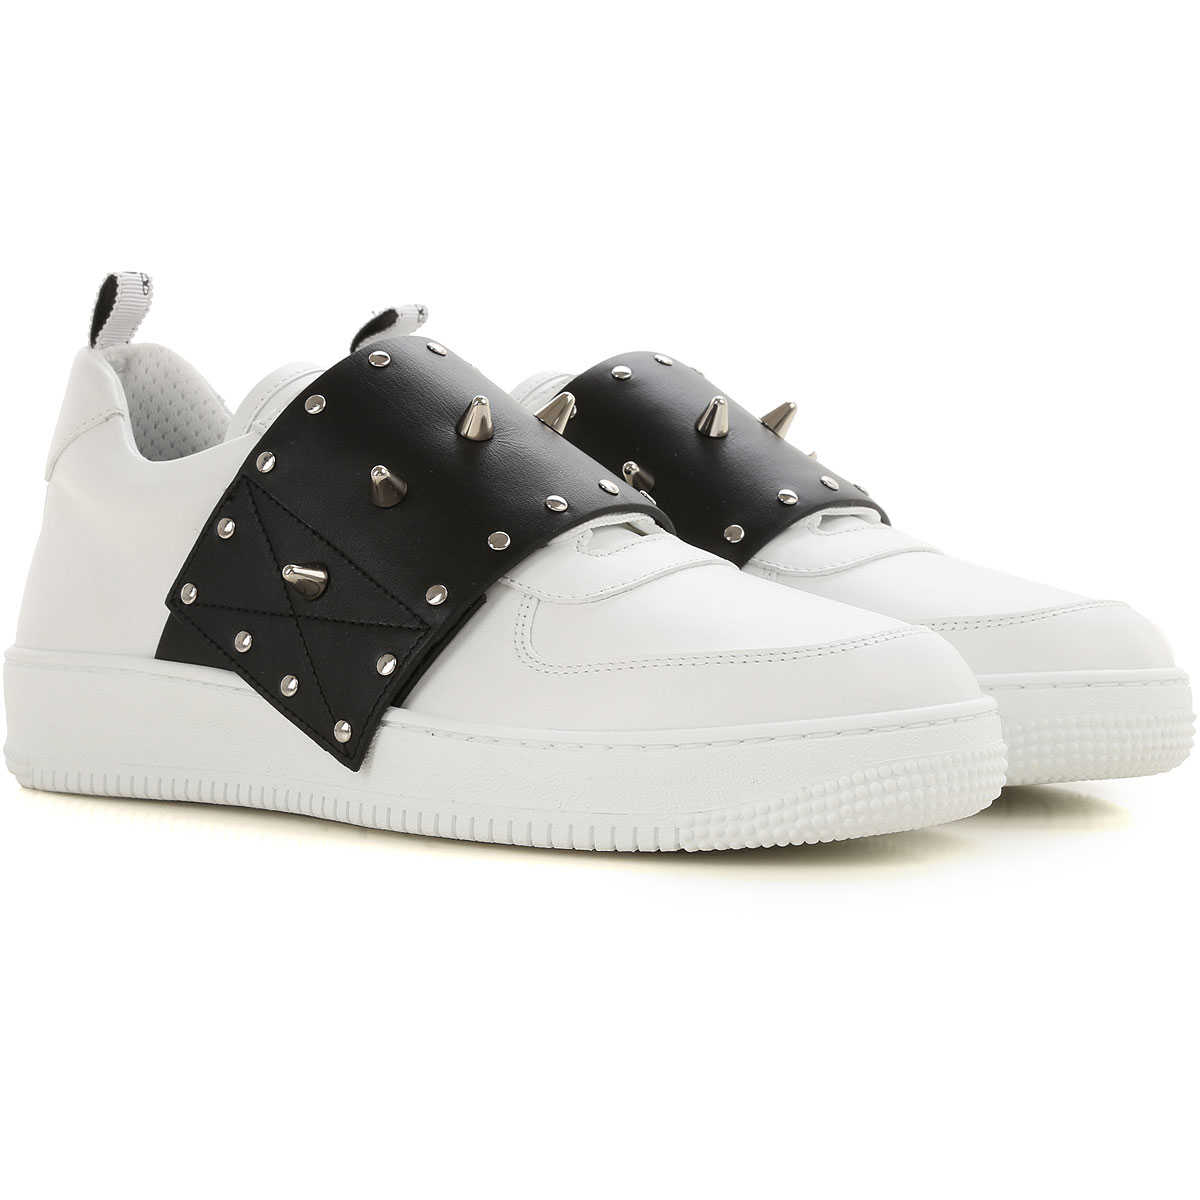 RED Valentino Sneakers for Women, White